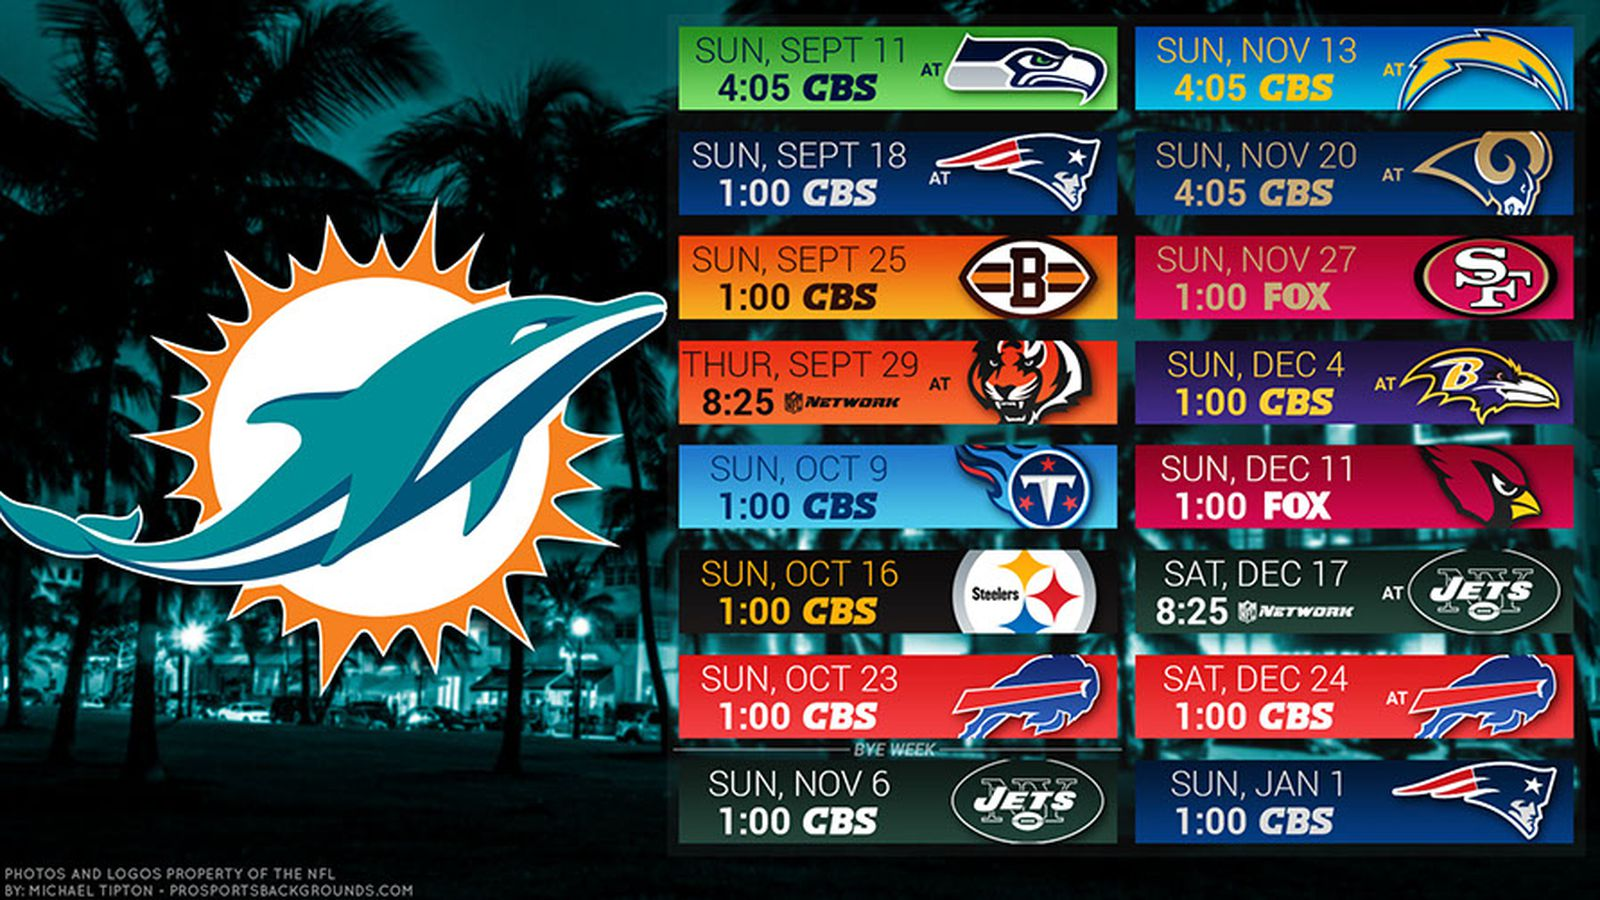 Seahawks Hd Wallpaper Examining The Remainder Of The Miami Dolphins Regular